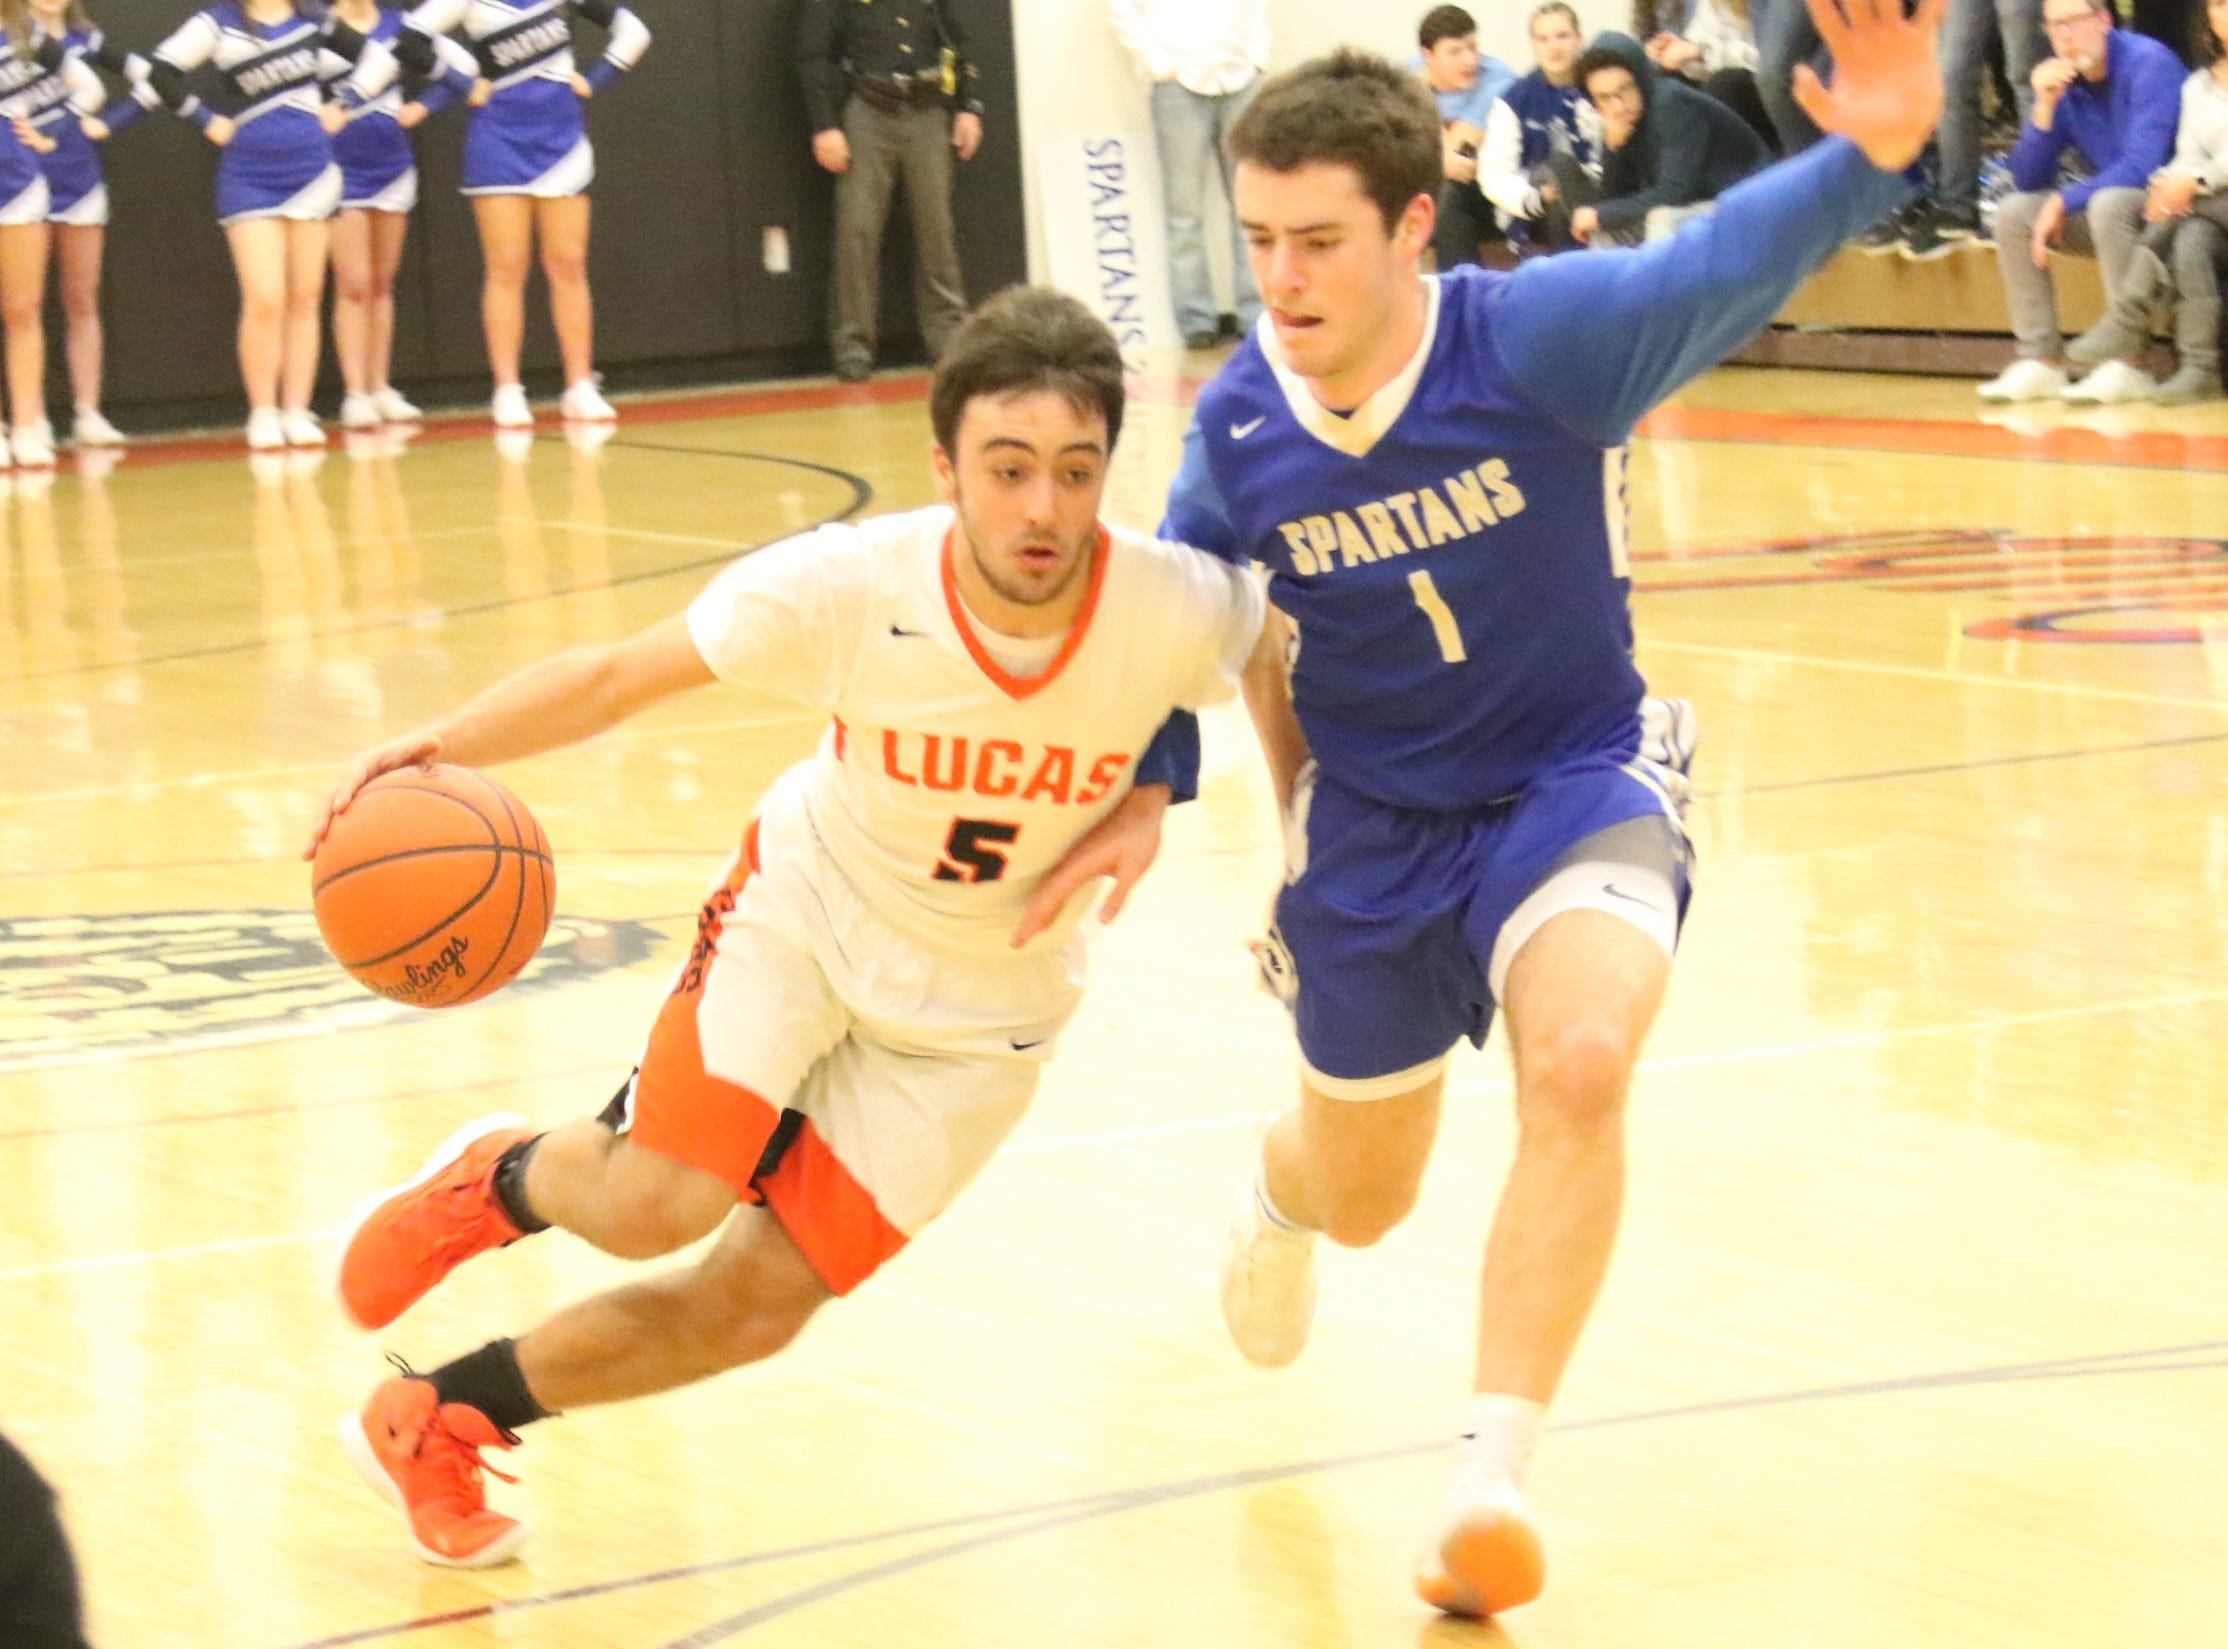 GALLERY: Lucas Cubs 65, St. Peter's Spartans 52